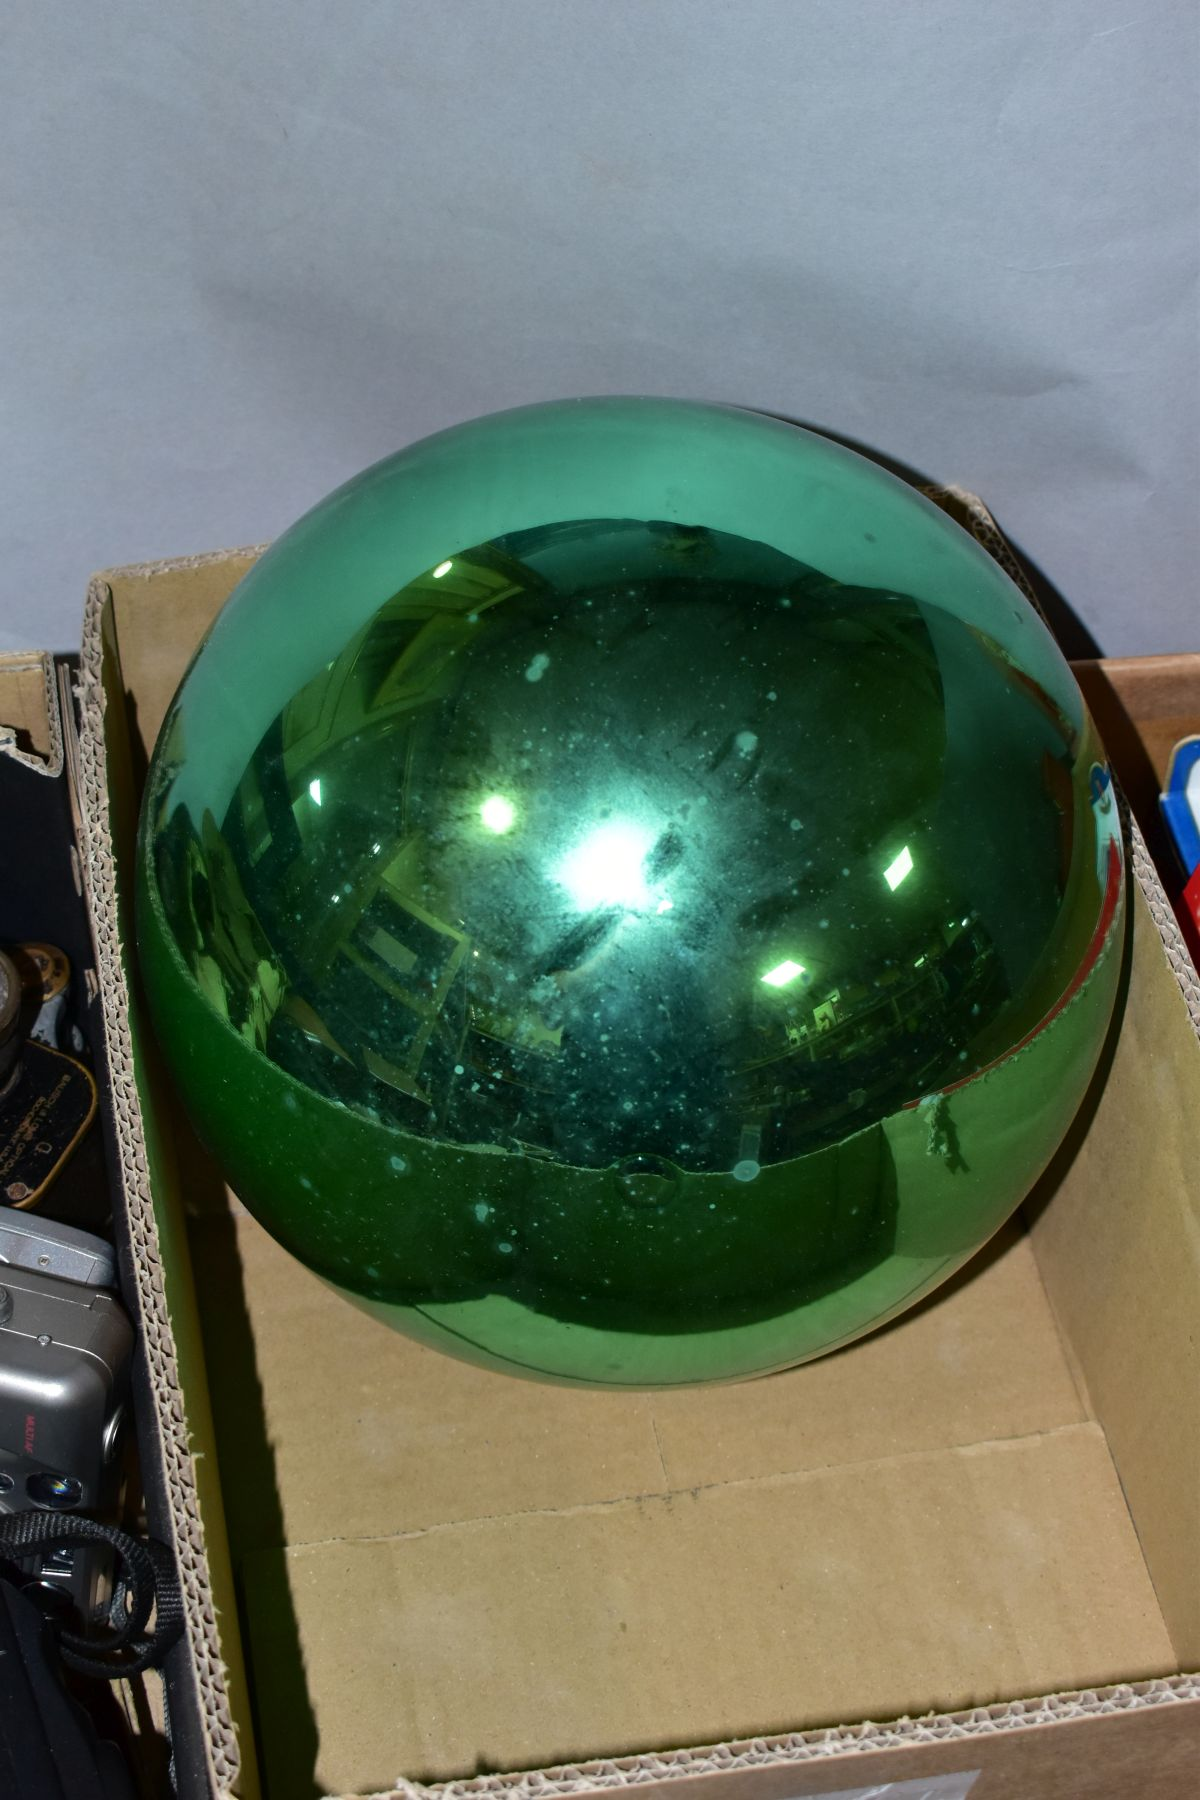 A LATE 19TH/EARLY 20TH CENTURY METALLIC GREEN GLASS WITCH'S BALL with metal mount and short length - Image 3 of 3